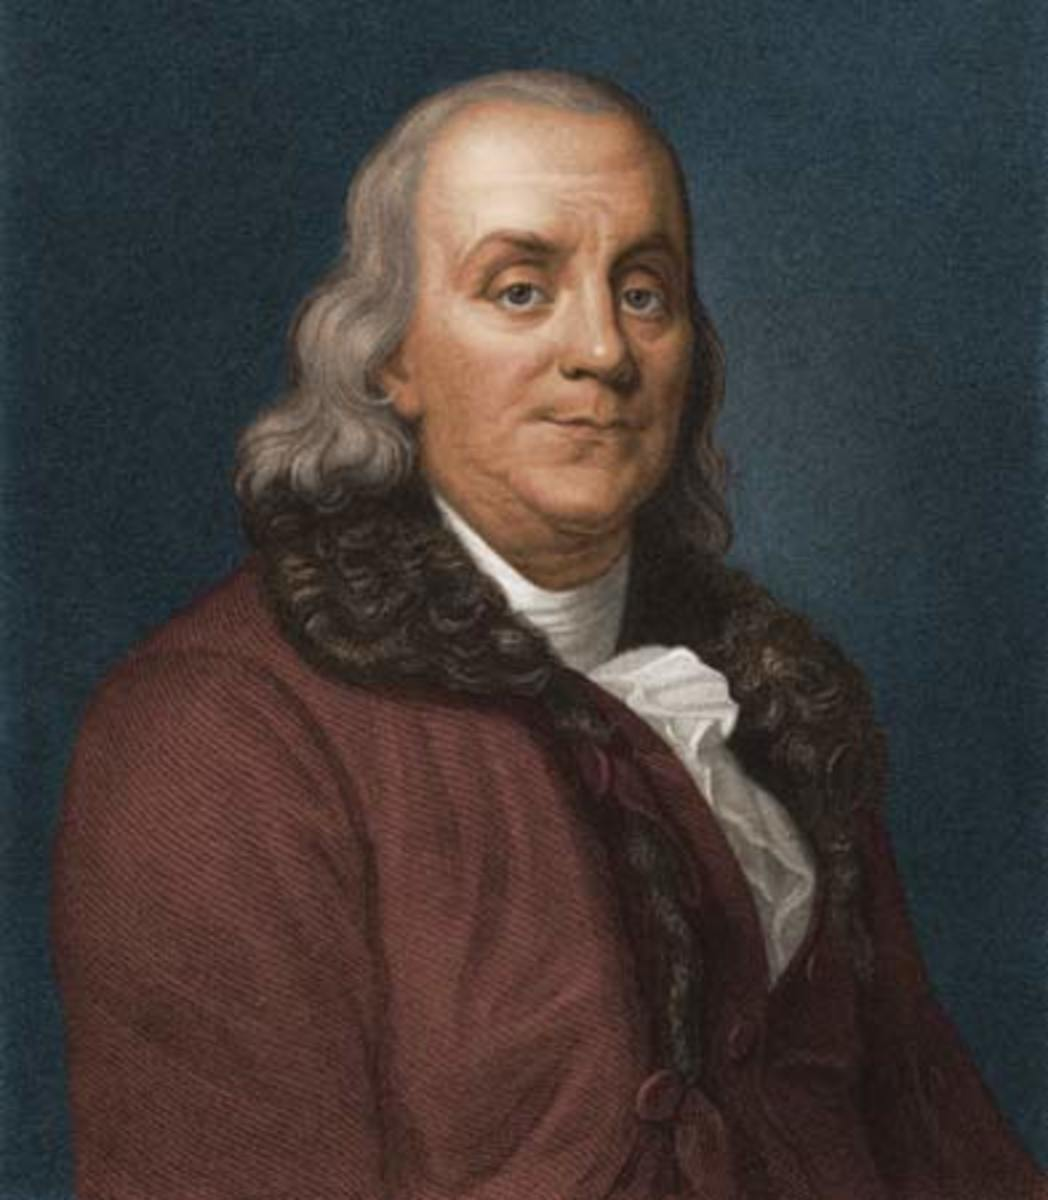 To Be Honest, I Don't Know That we Can Keep It, Mr. Franklin